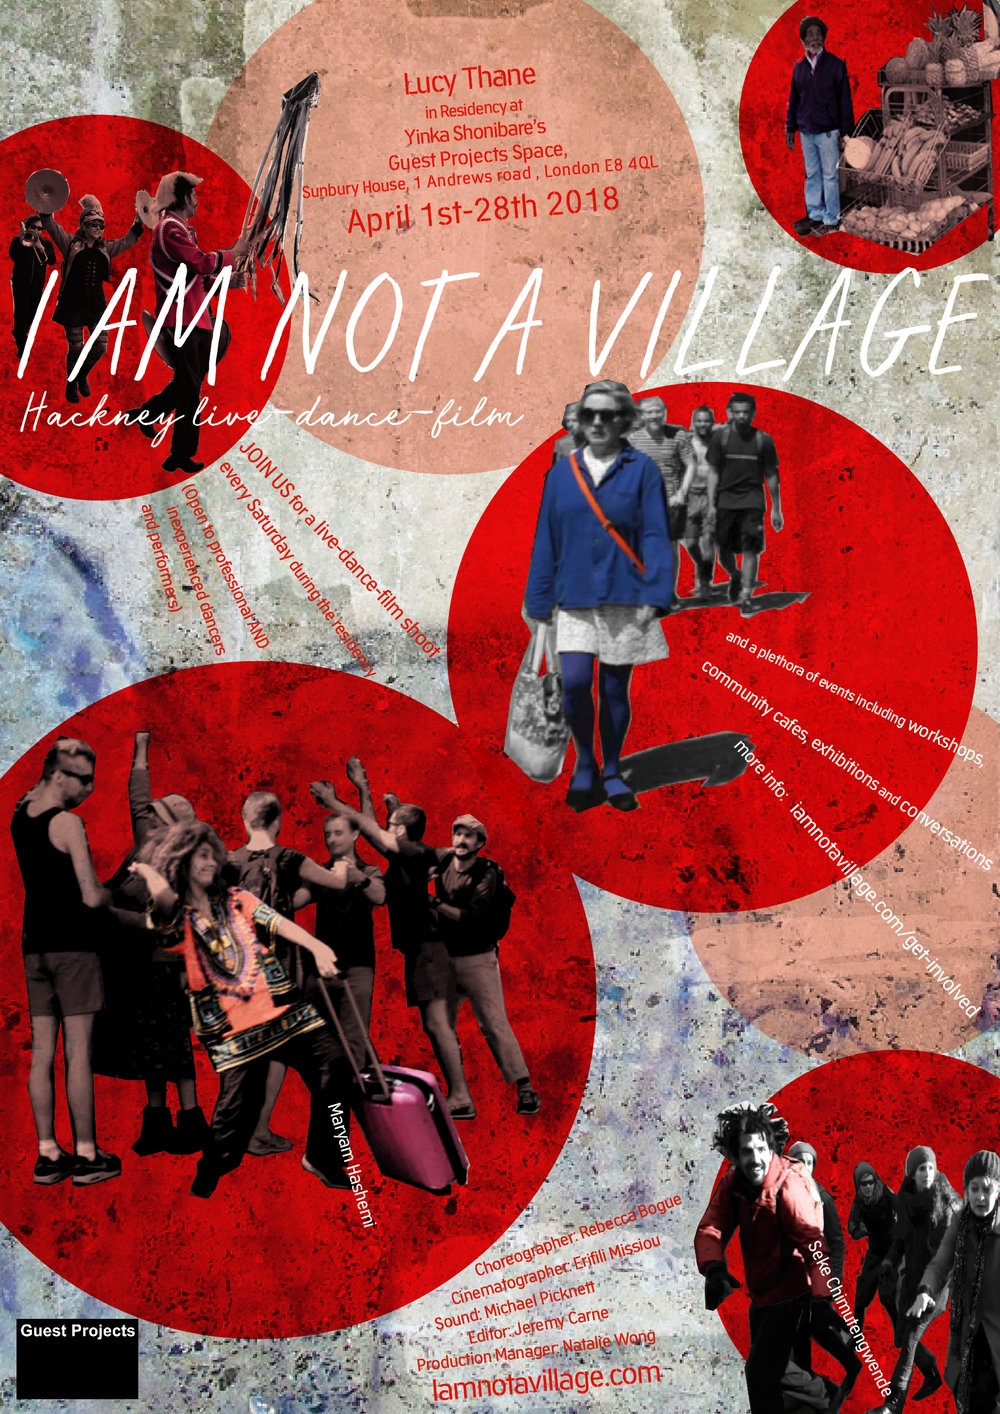 IAMNOTAVILLAGEresidency-01.jpg